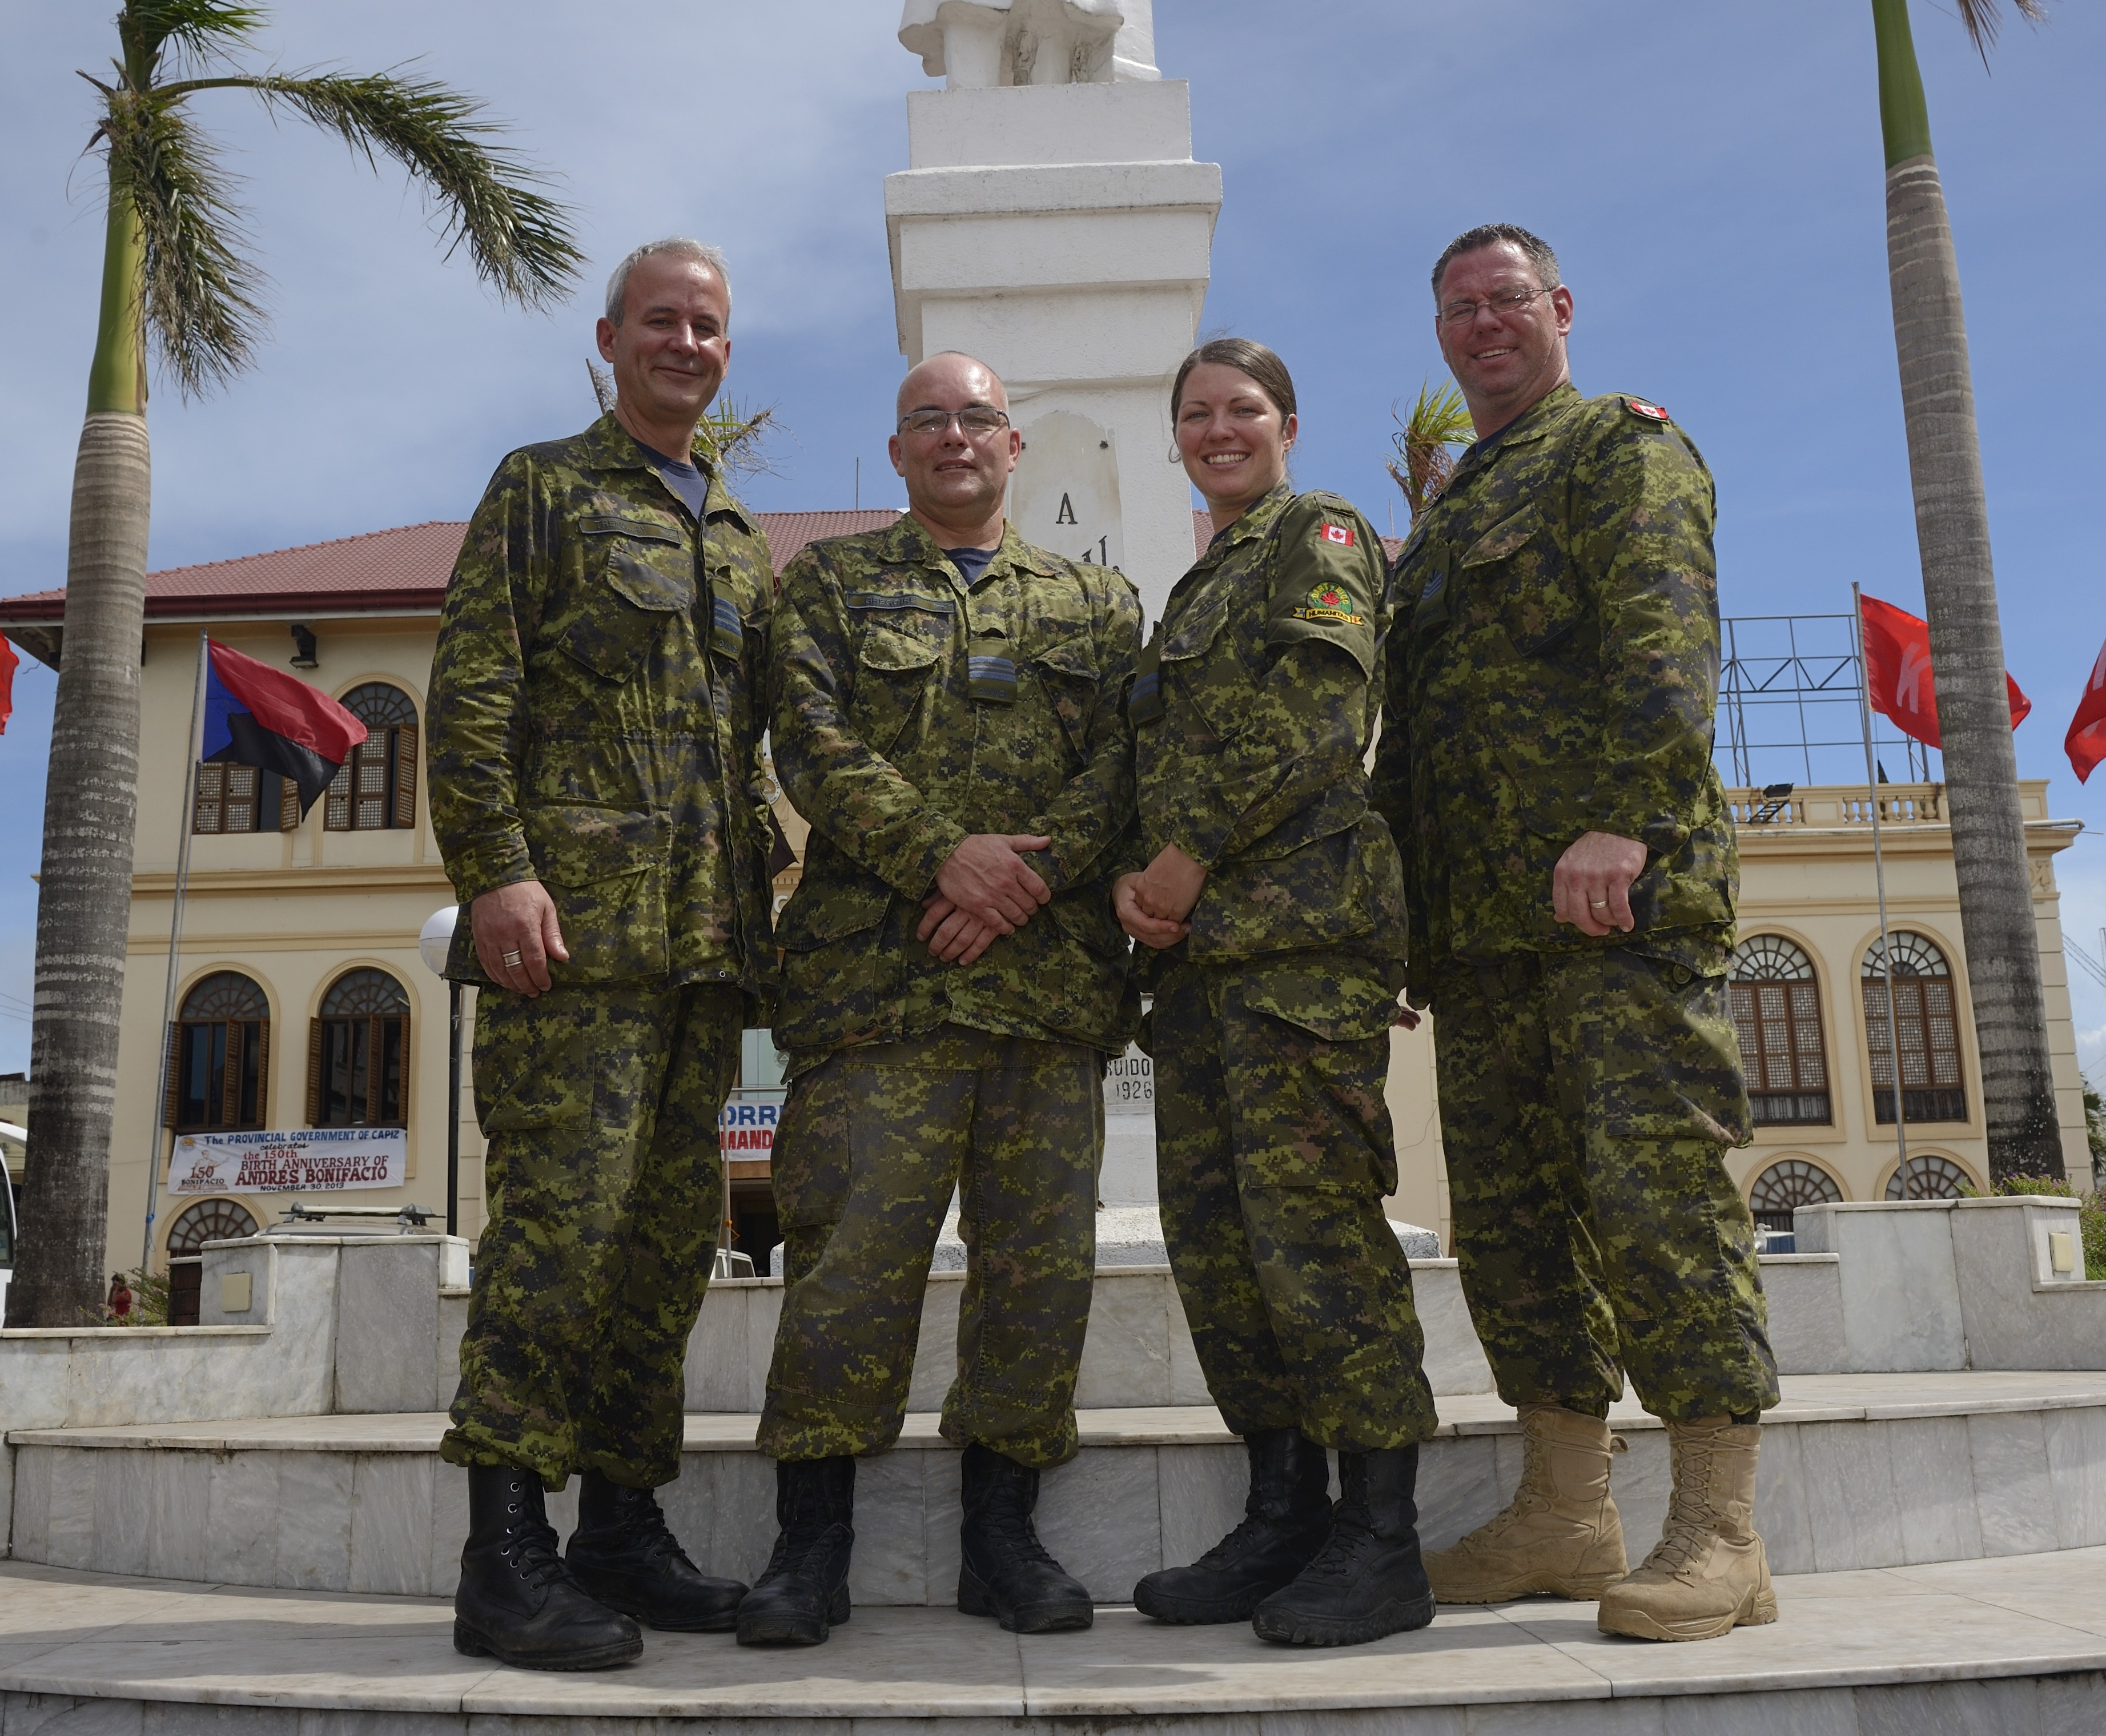 (Left to right) Lieutenant Colonel Sabin Tremblay, Major Stephann Gregoire, Captain Janaya Hansen, and Sergeant Francis Jerdon in Roxas, Philippines on November 29, 2013. All are members of 2 Wing Bagotville Quebec. PHOTO: Corporal Ariane Montambeault